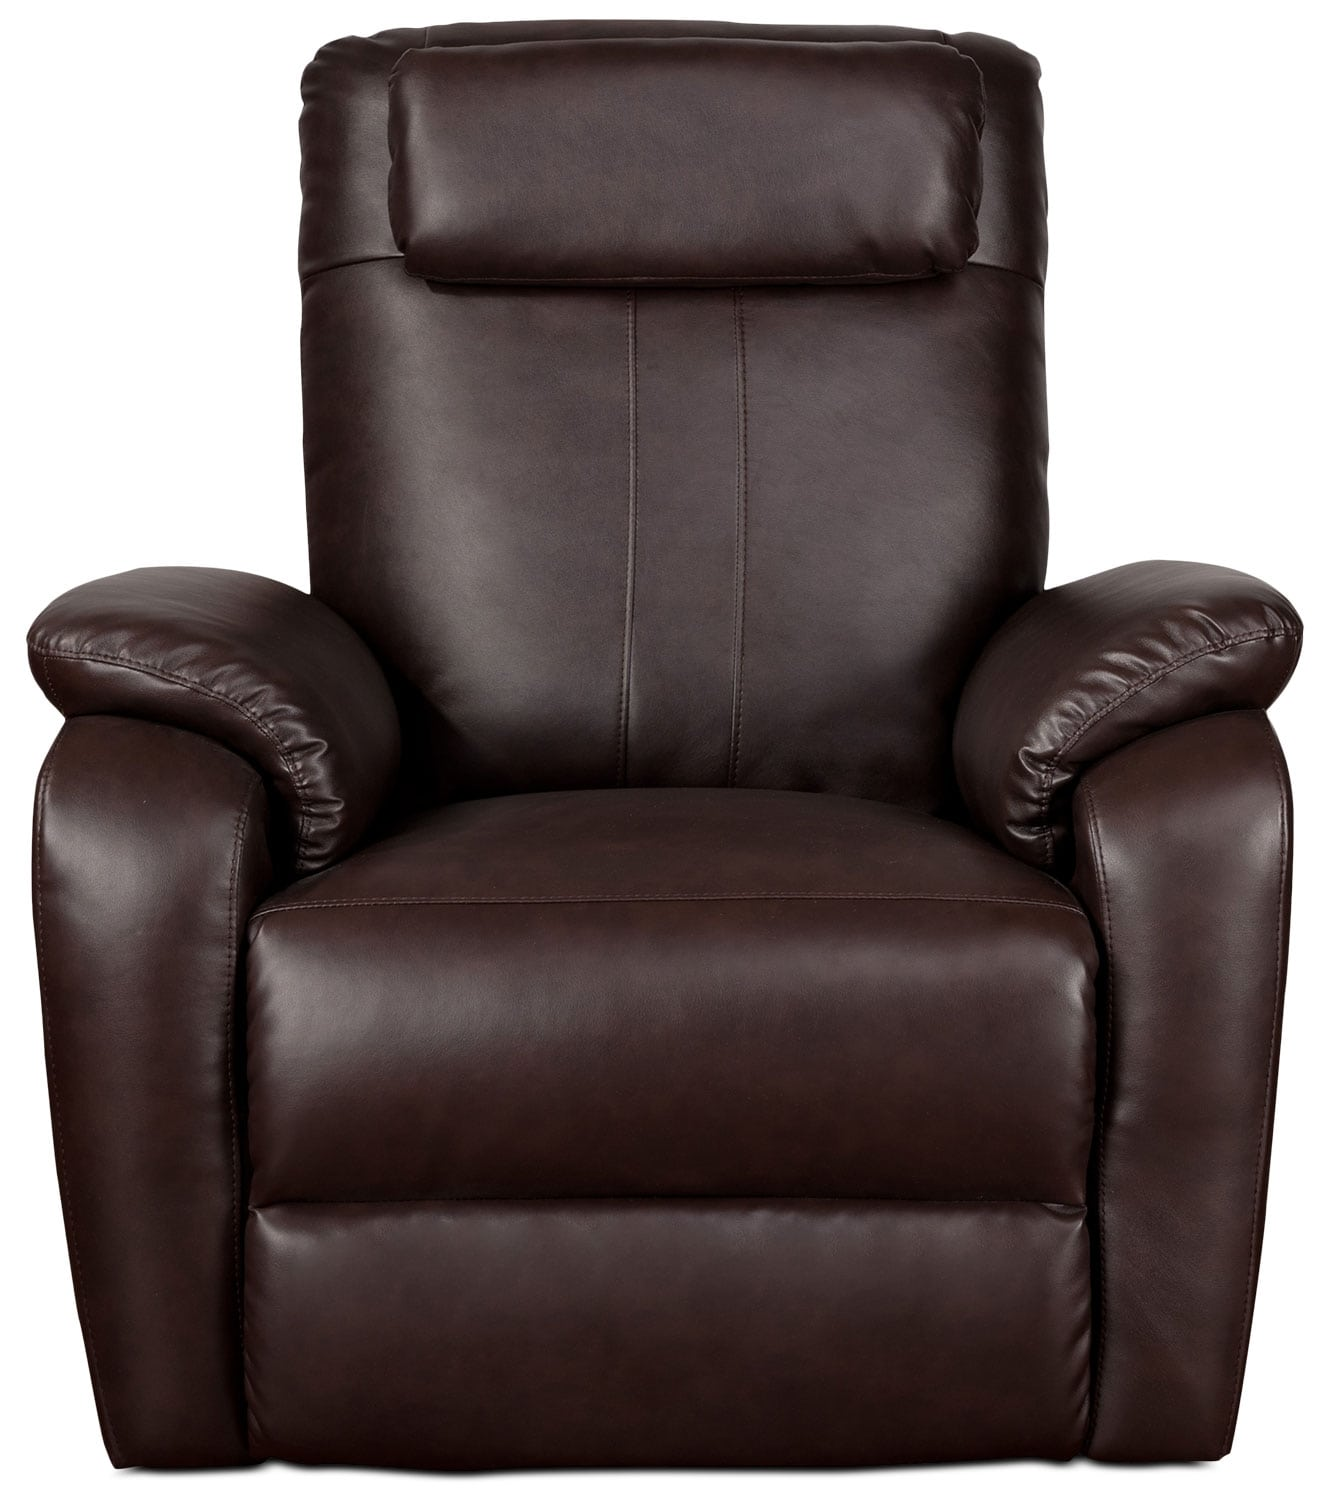 Sparta Rocker Recliner | Value City Furniture and Mattresses on Sparta Outdoor Living id=12294